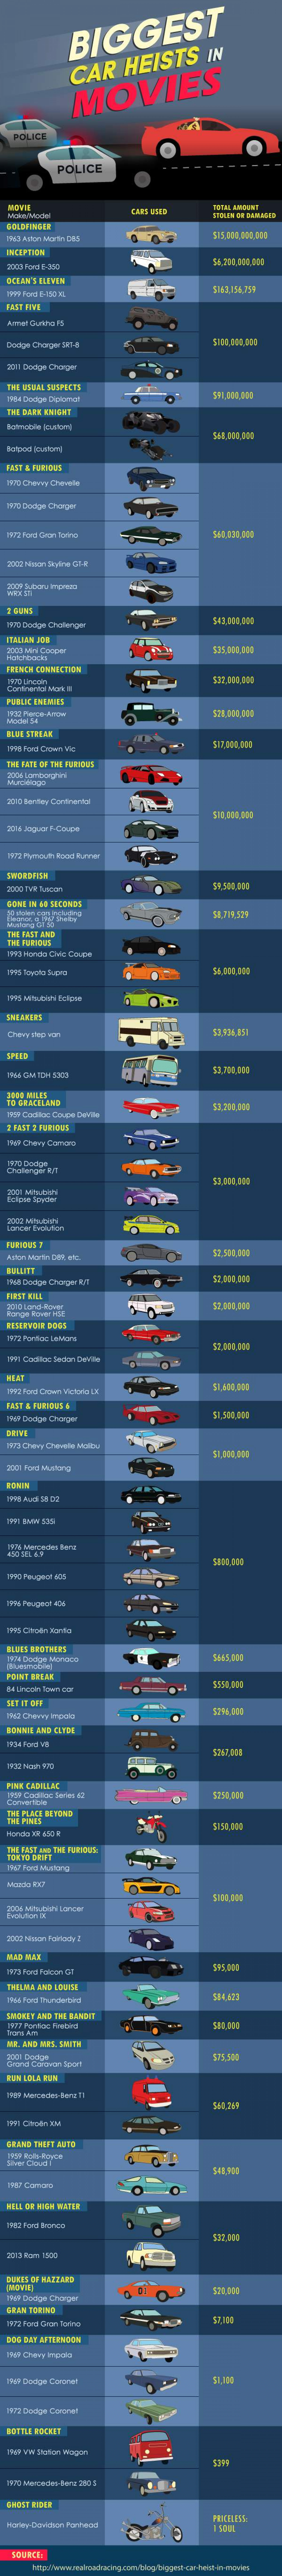 Which Movies Had the Biggest Car Heists? Infographic